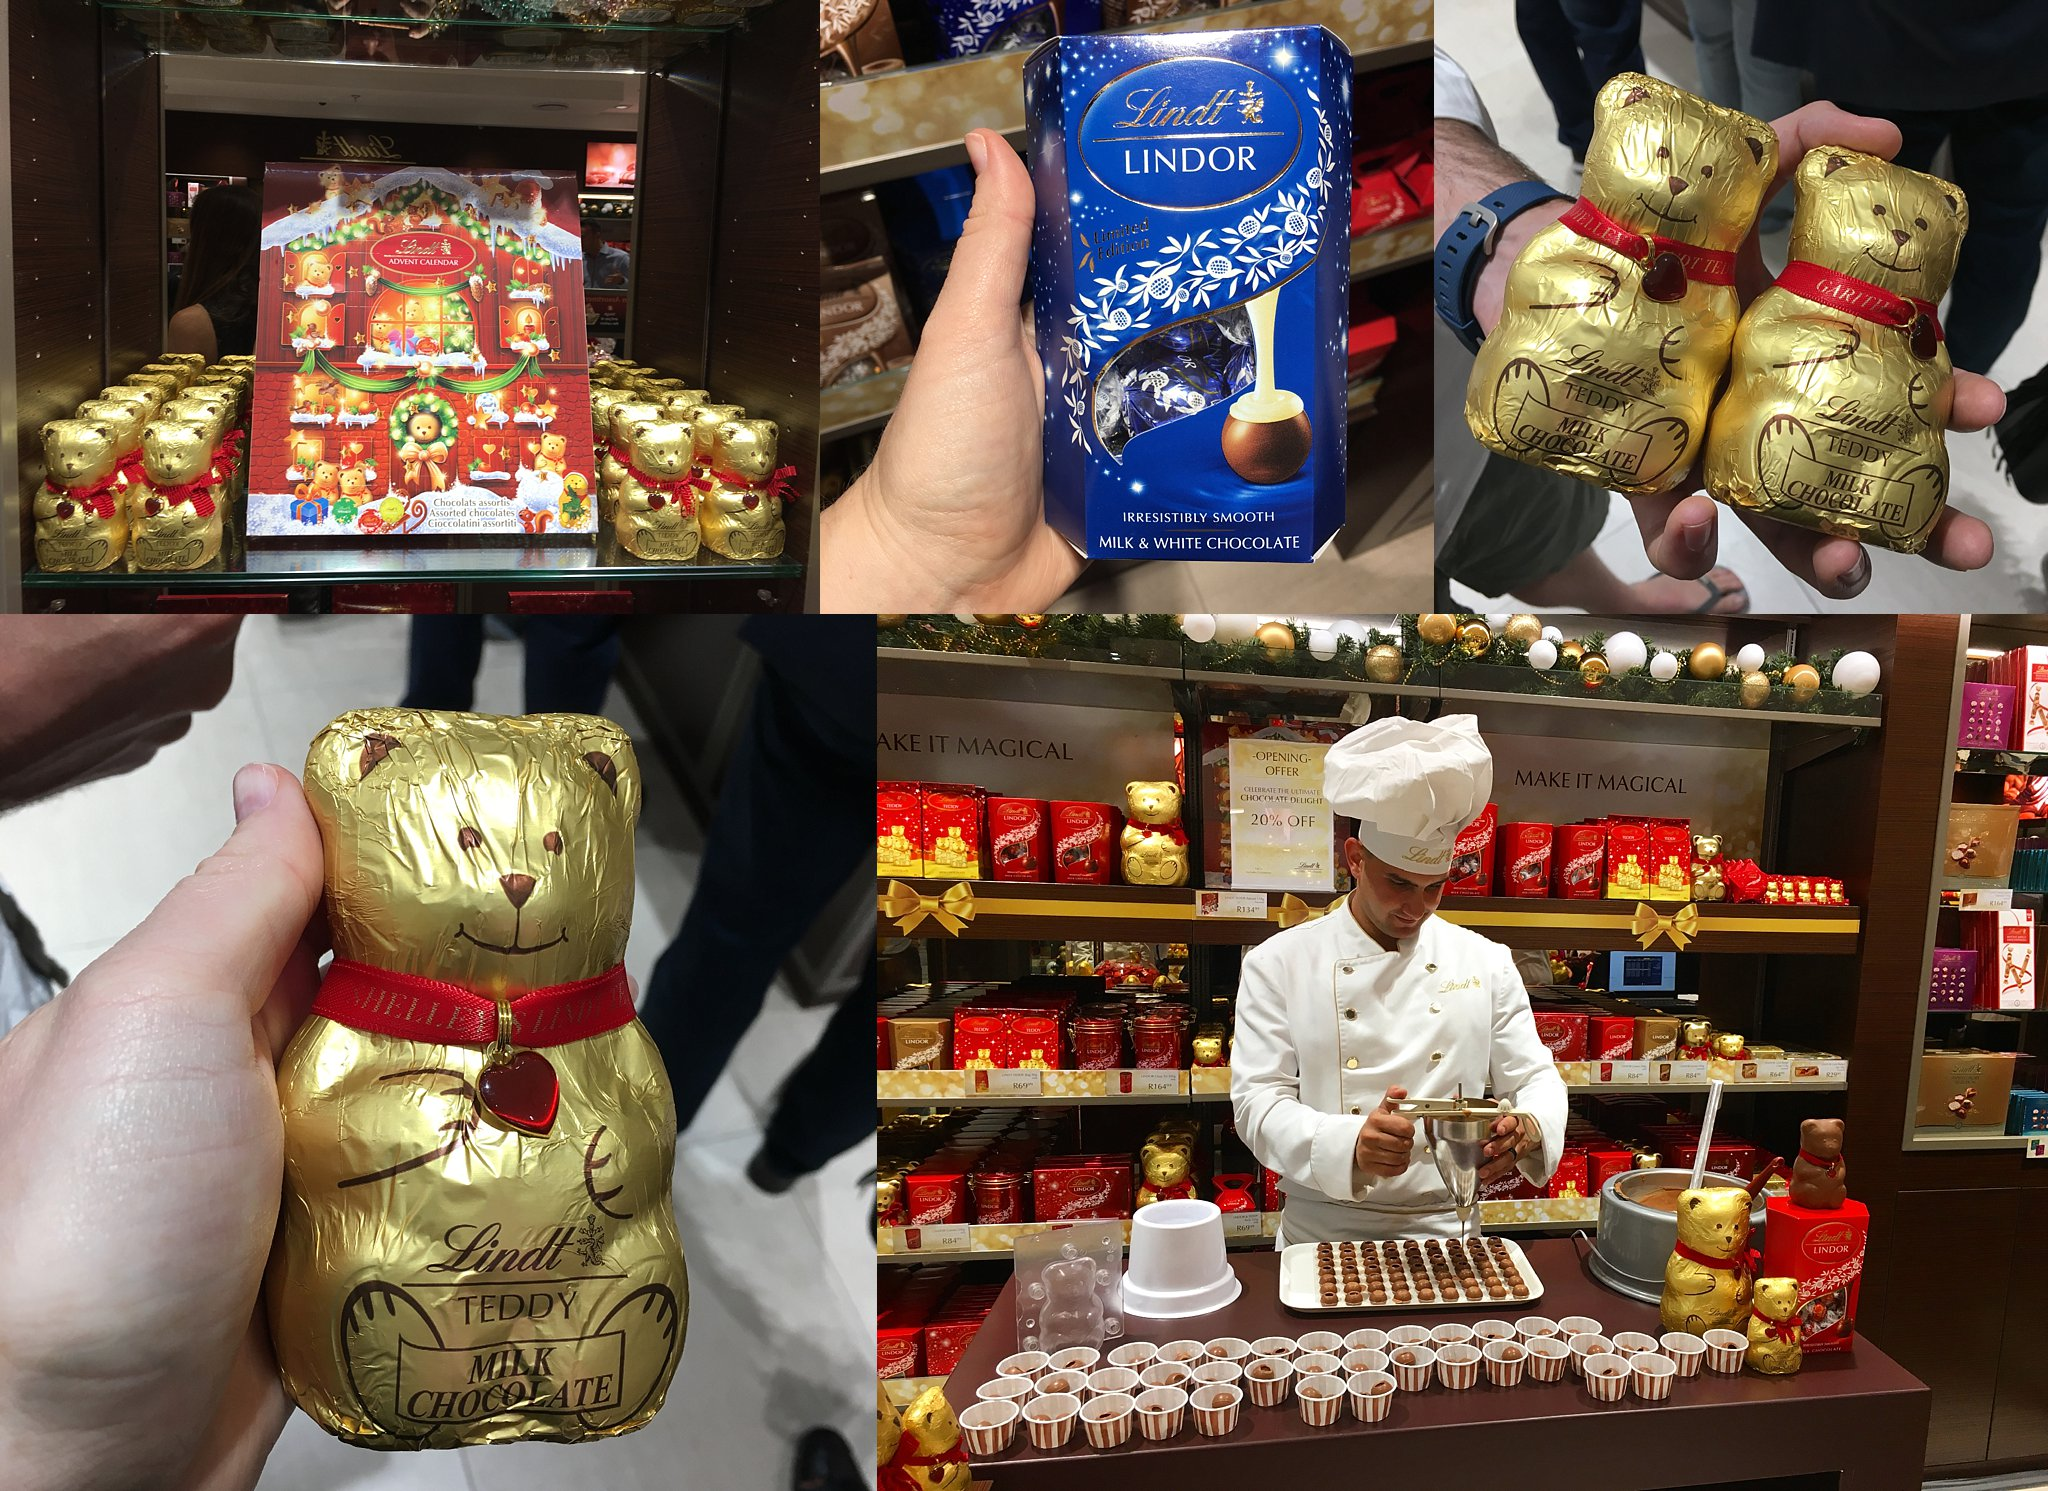 Lindt Teddy, Lindt Christmas & launch of the Menlyn Lindt Chocolate Boutique Store